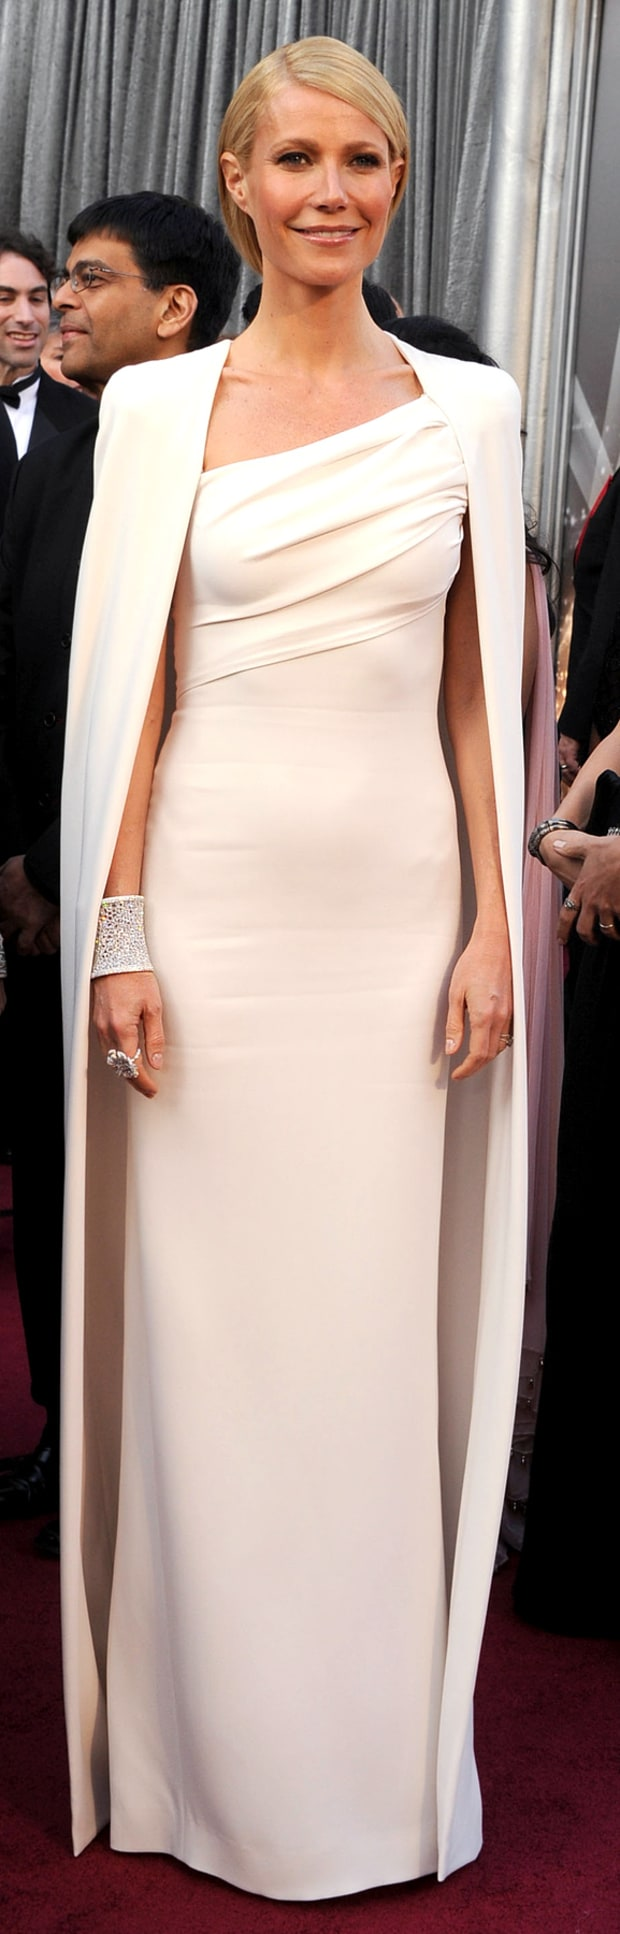 Gwyneth Paltrow at the 84th Annual Academy Awards